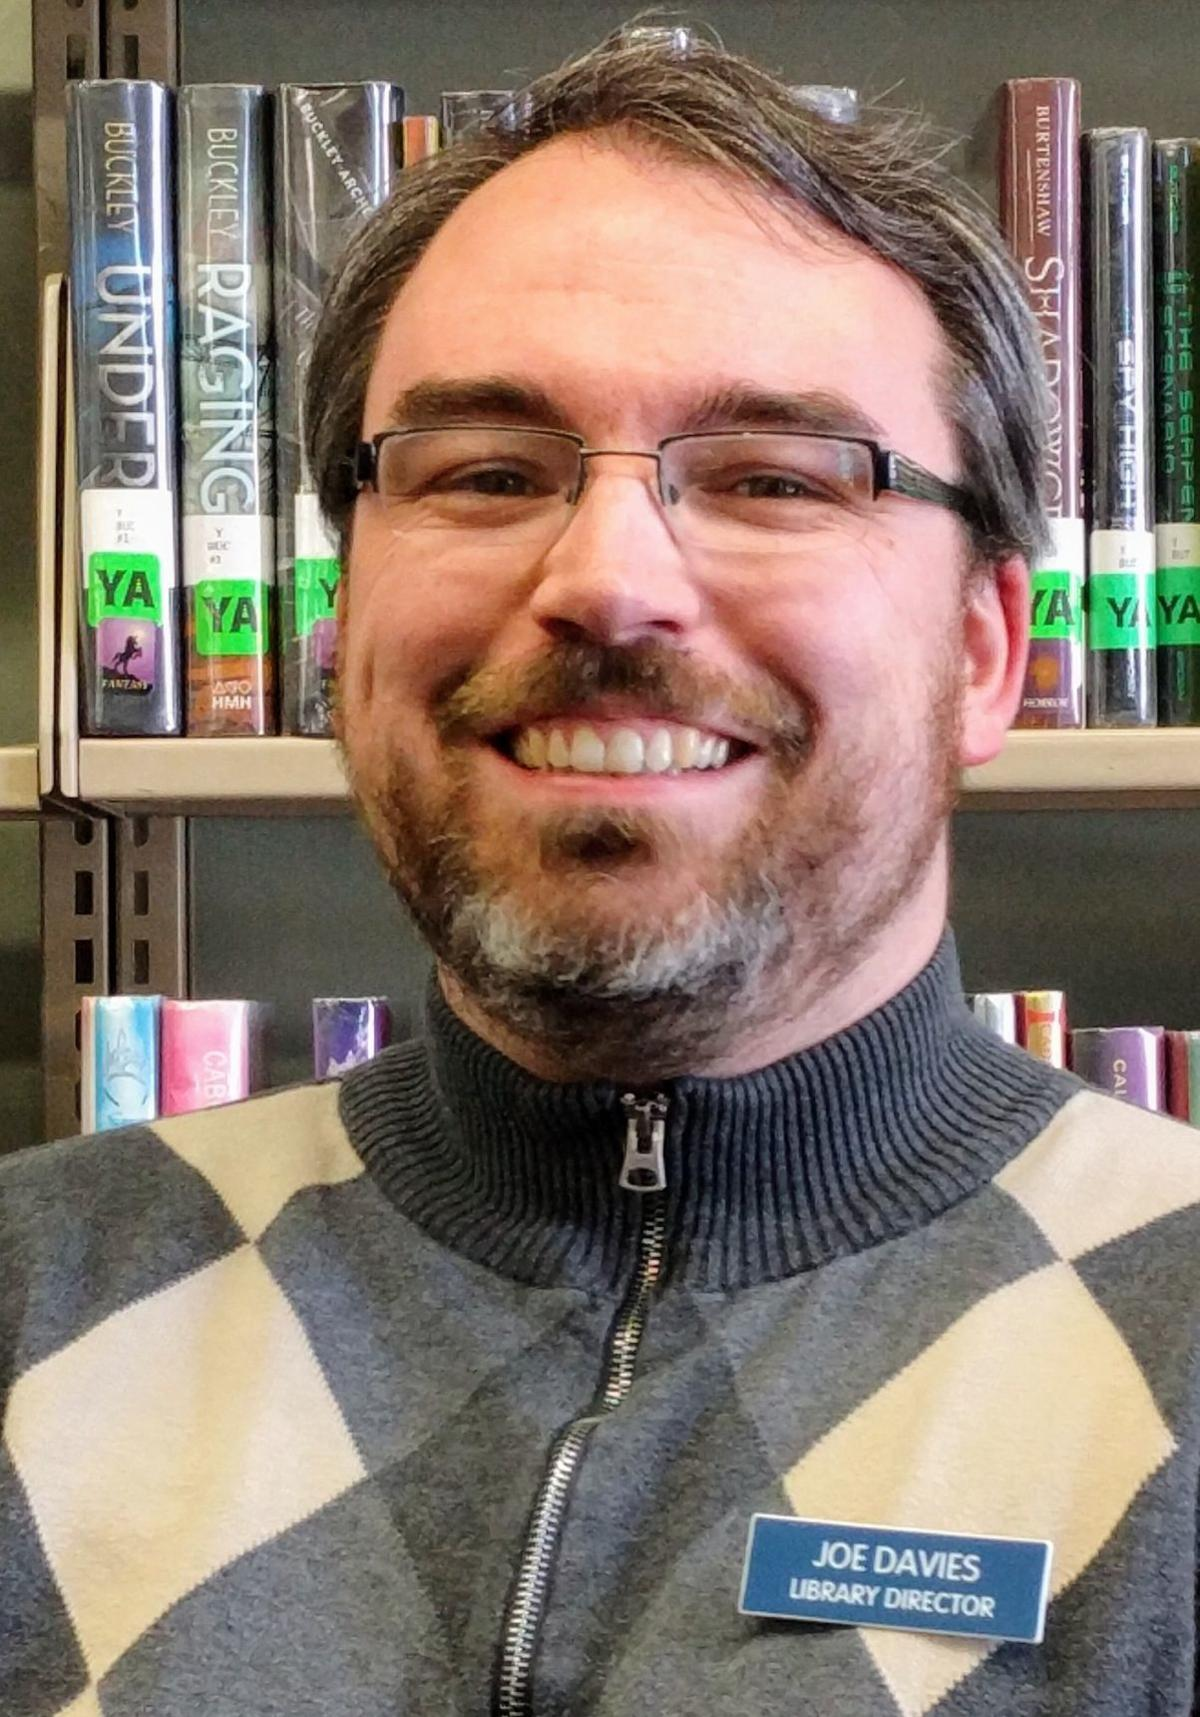 Joe Davies, Burlington Library director